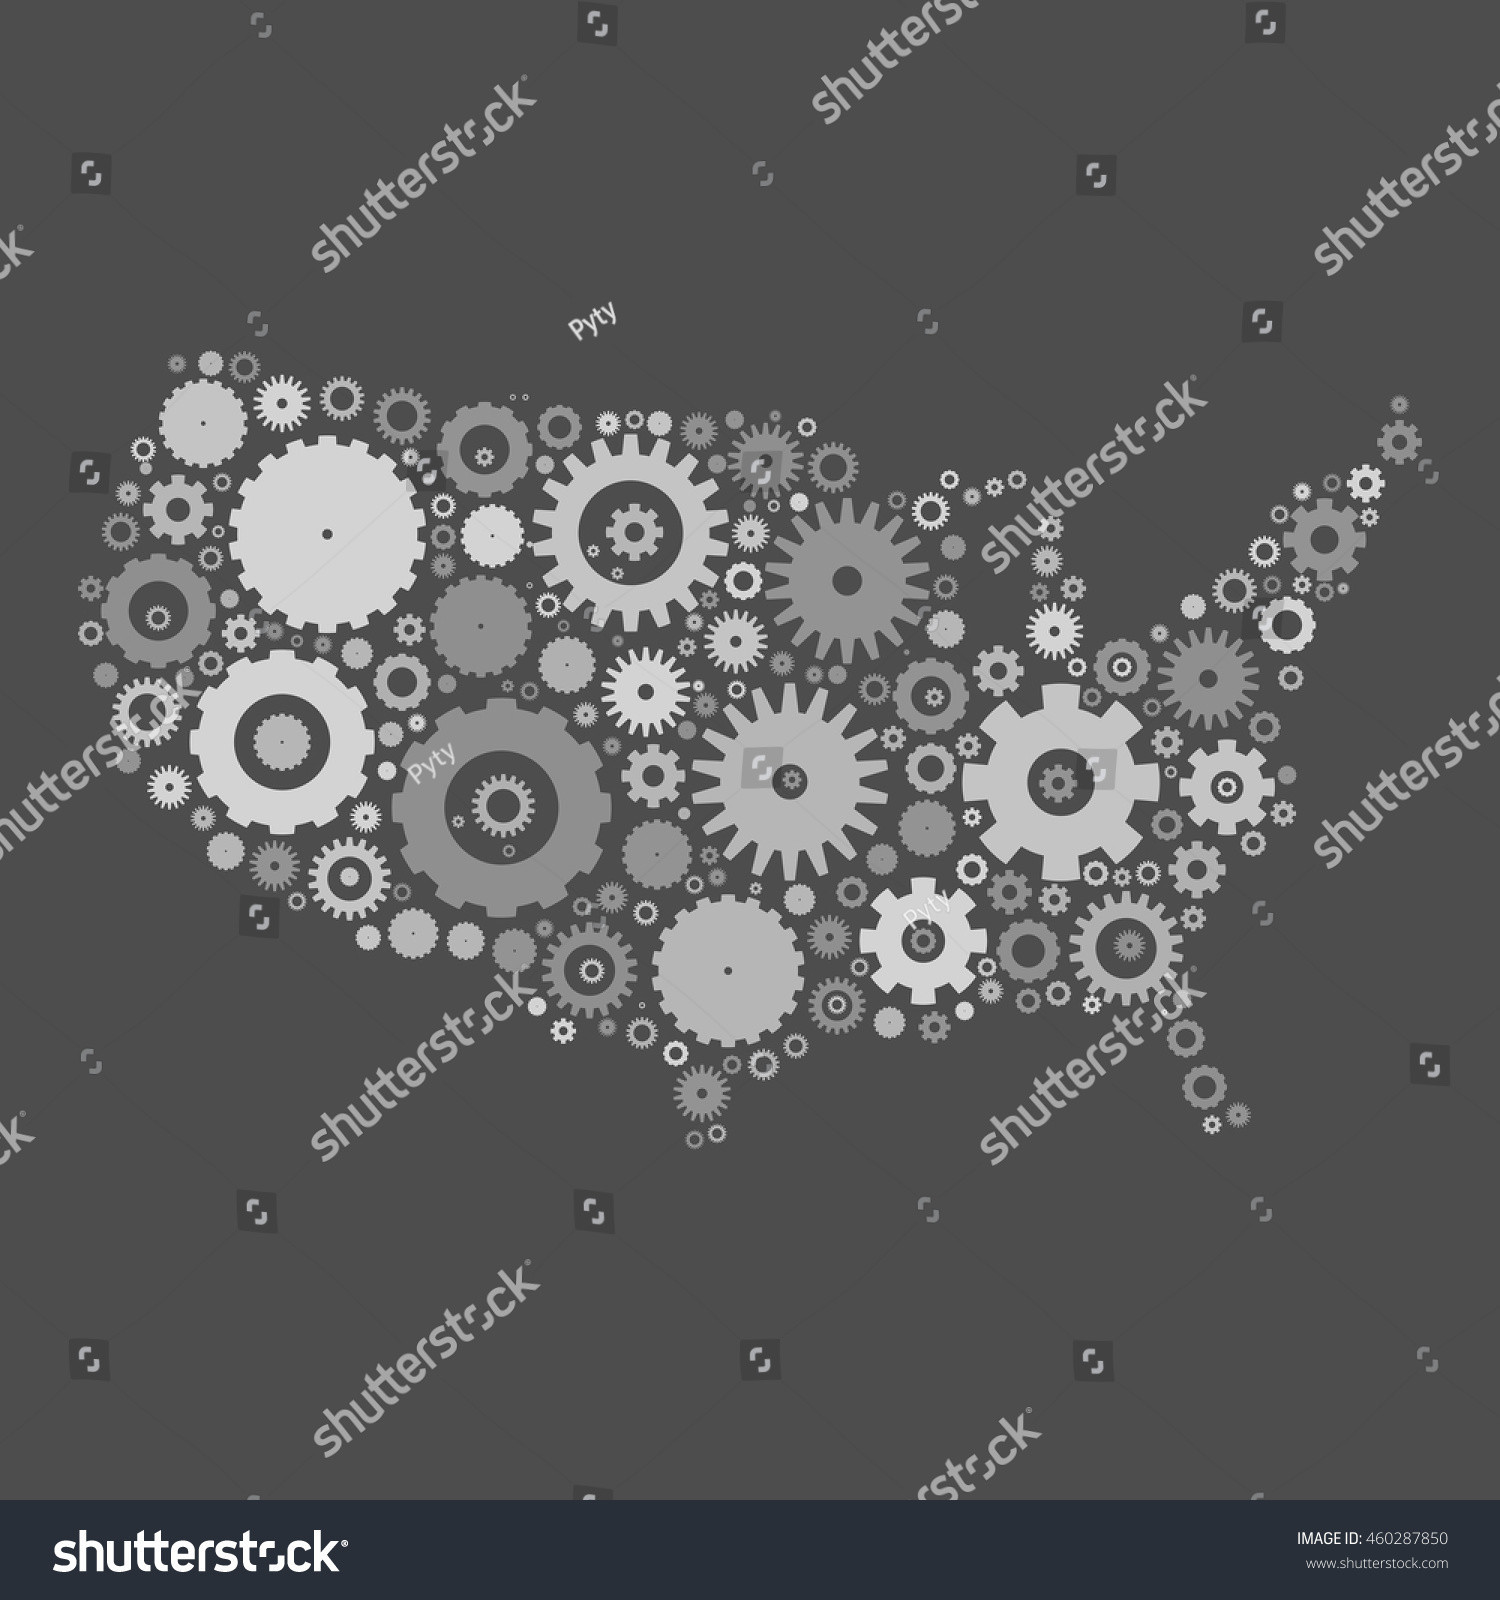 1500x1600 United States Outline Png Best Usa Map Outline Vector Art Valid